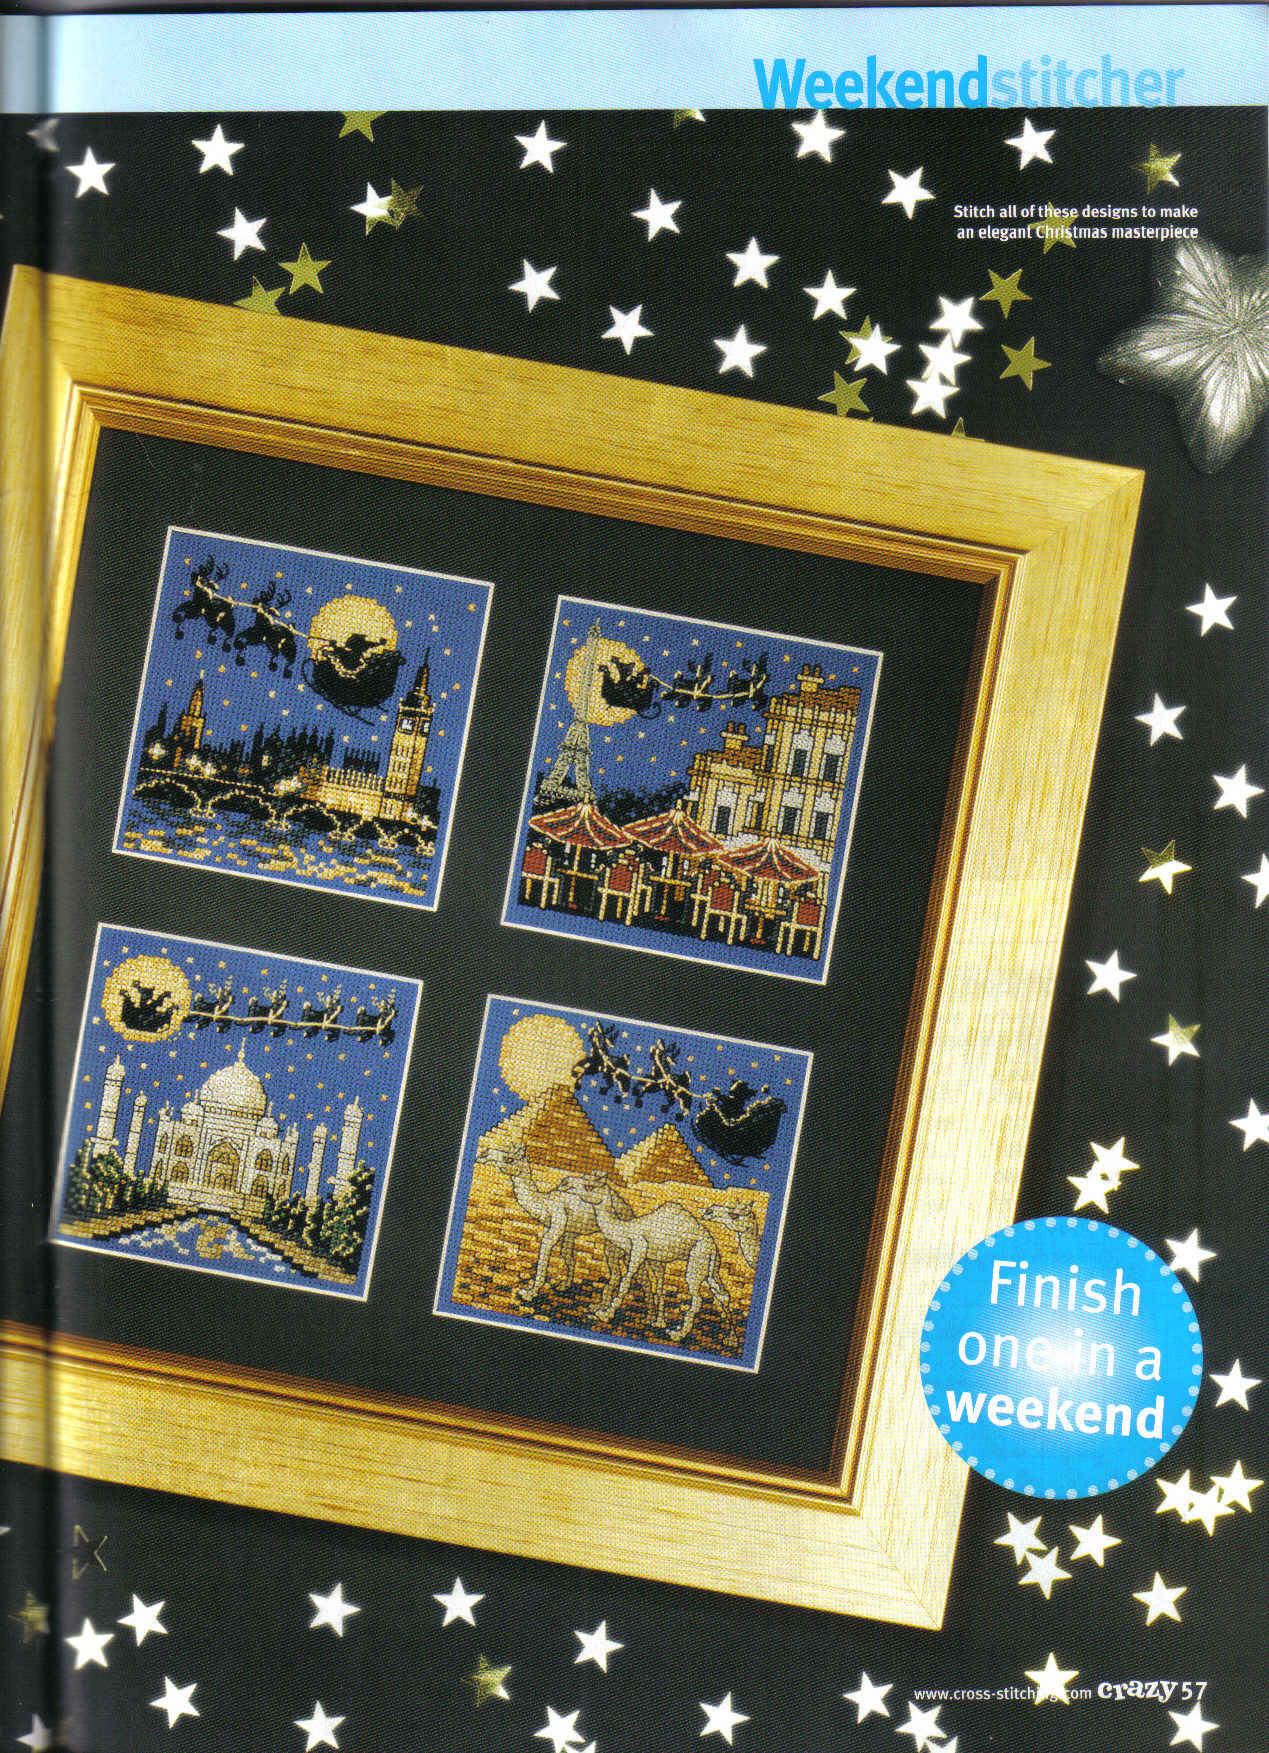 http://make-handmade.com/wp-content/uploads/2011/12/christmas-crafts-santa-s-sleigh-ride-cross-stitch-kits-make-handmade-26e8b54b517a3.jpg